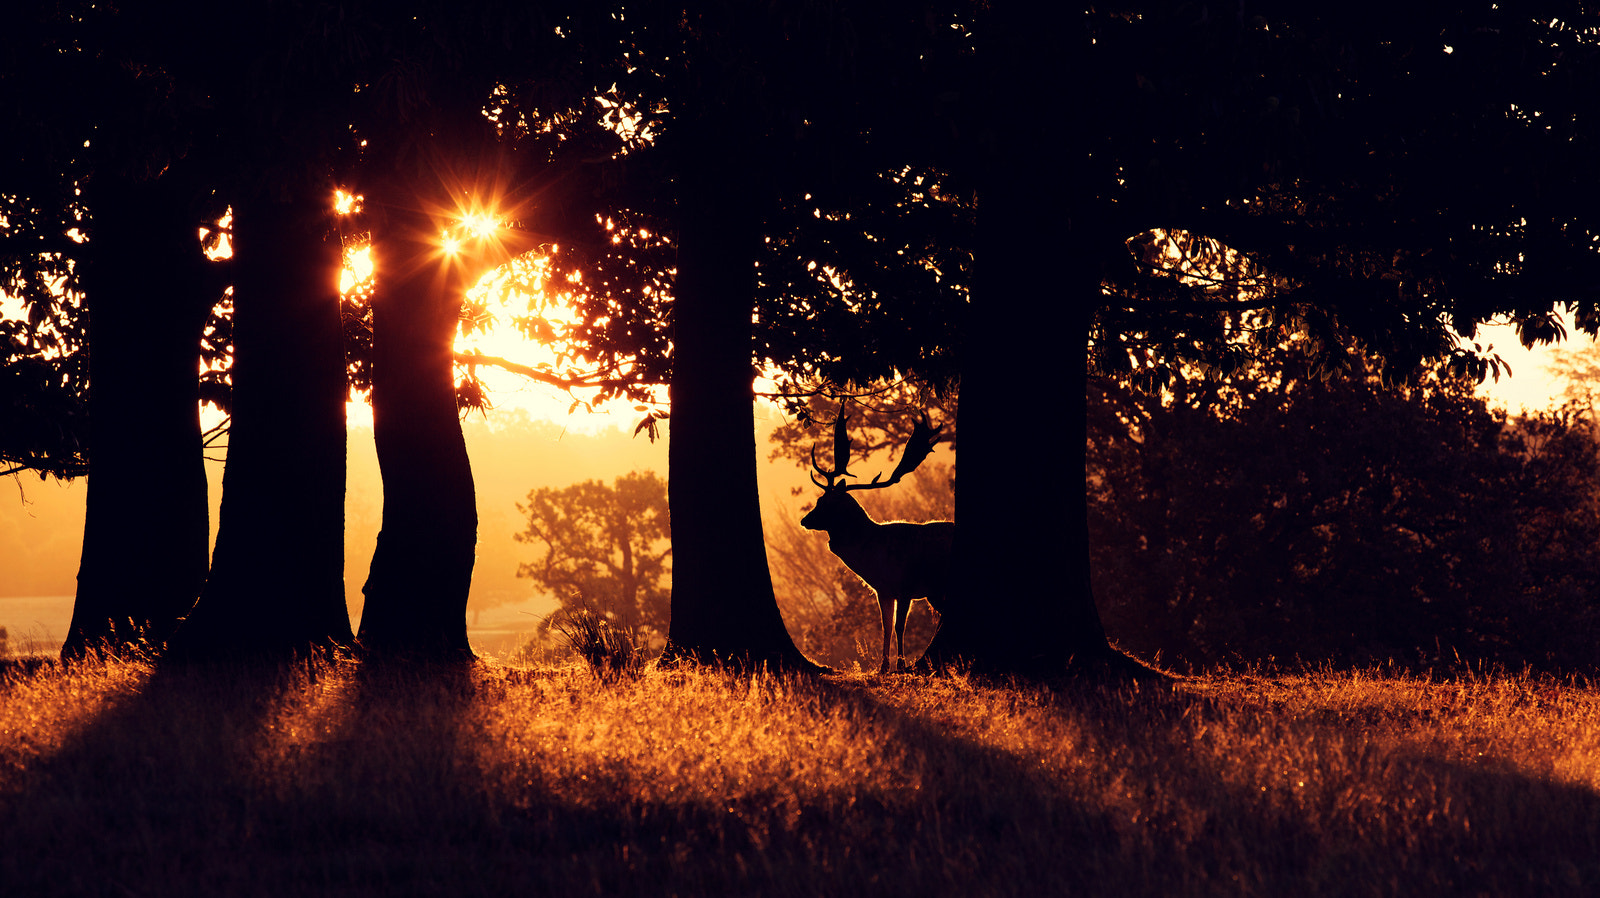 Photograph twinkle by Mark Bridger on 500px